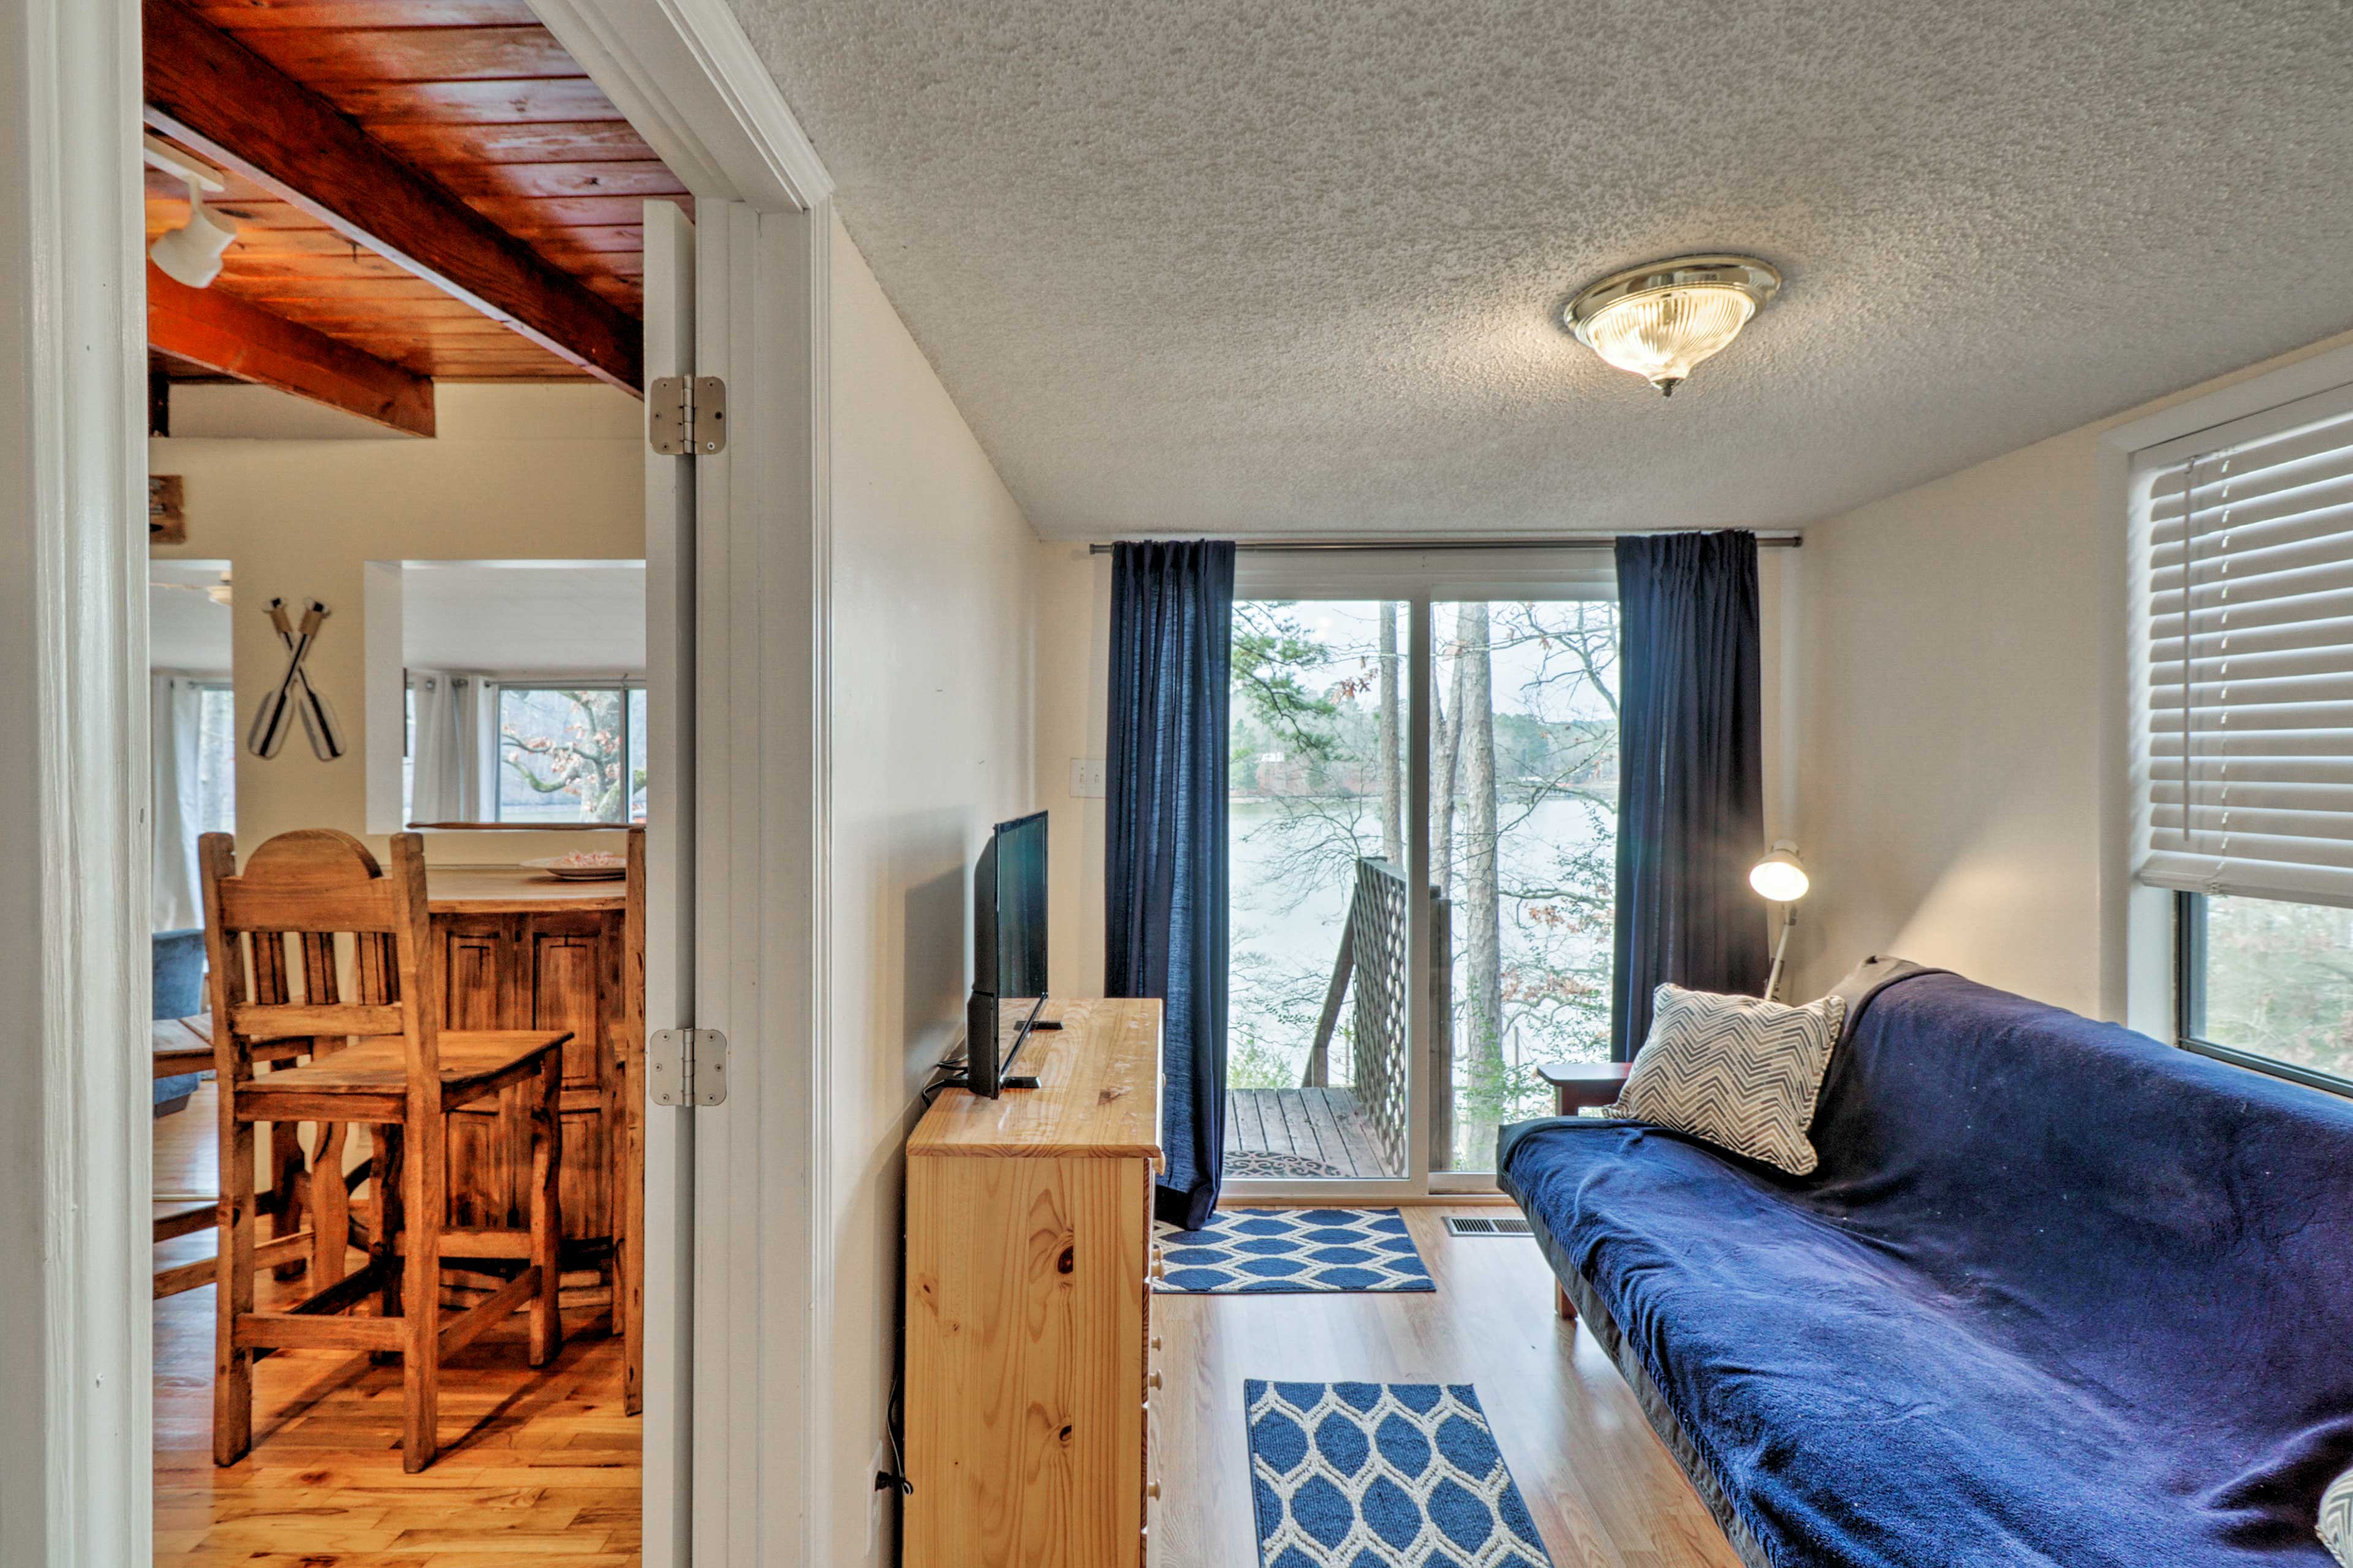 The third bedroom has a futon for sleeping at night and lounging in the daytime.